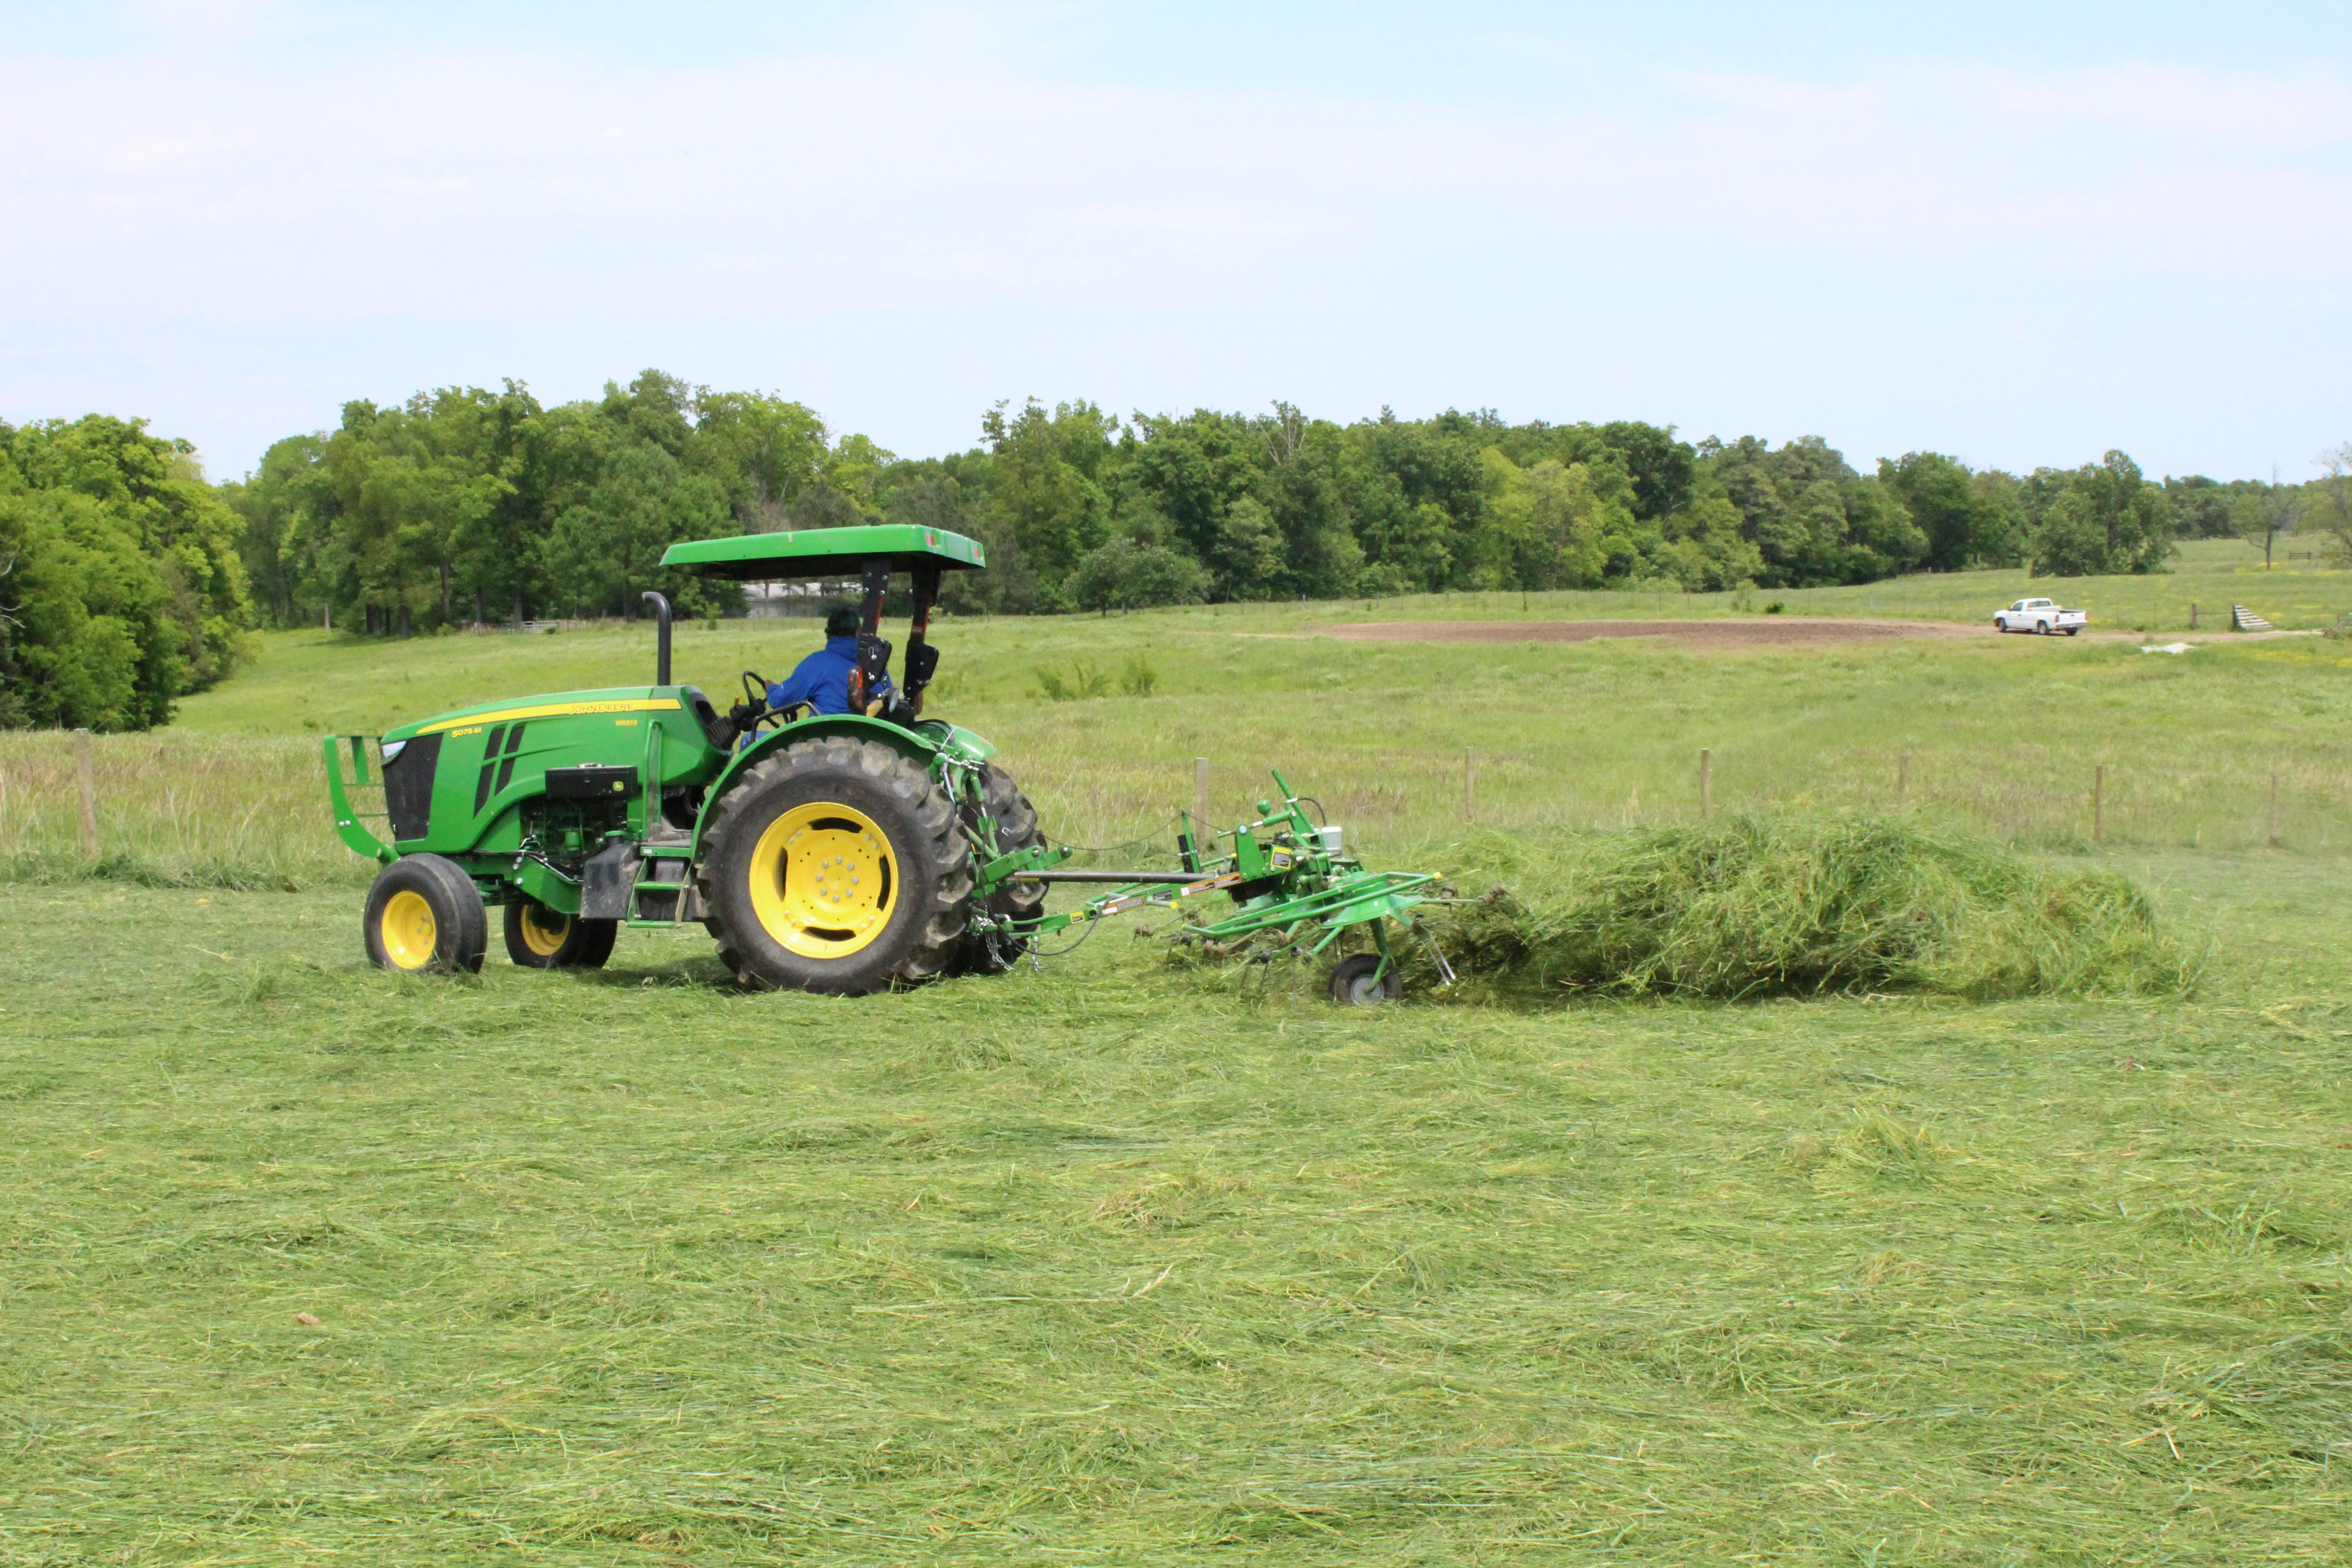 A producer cutting alfalfa hay. Photo courtesy of Chris Teutsch, UK forage extension specialist.